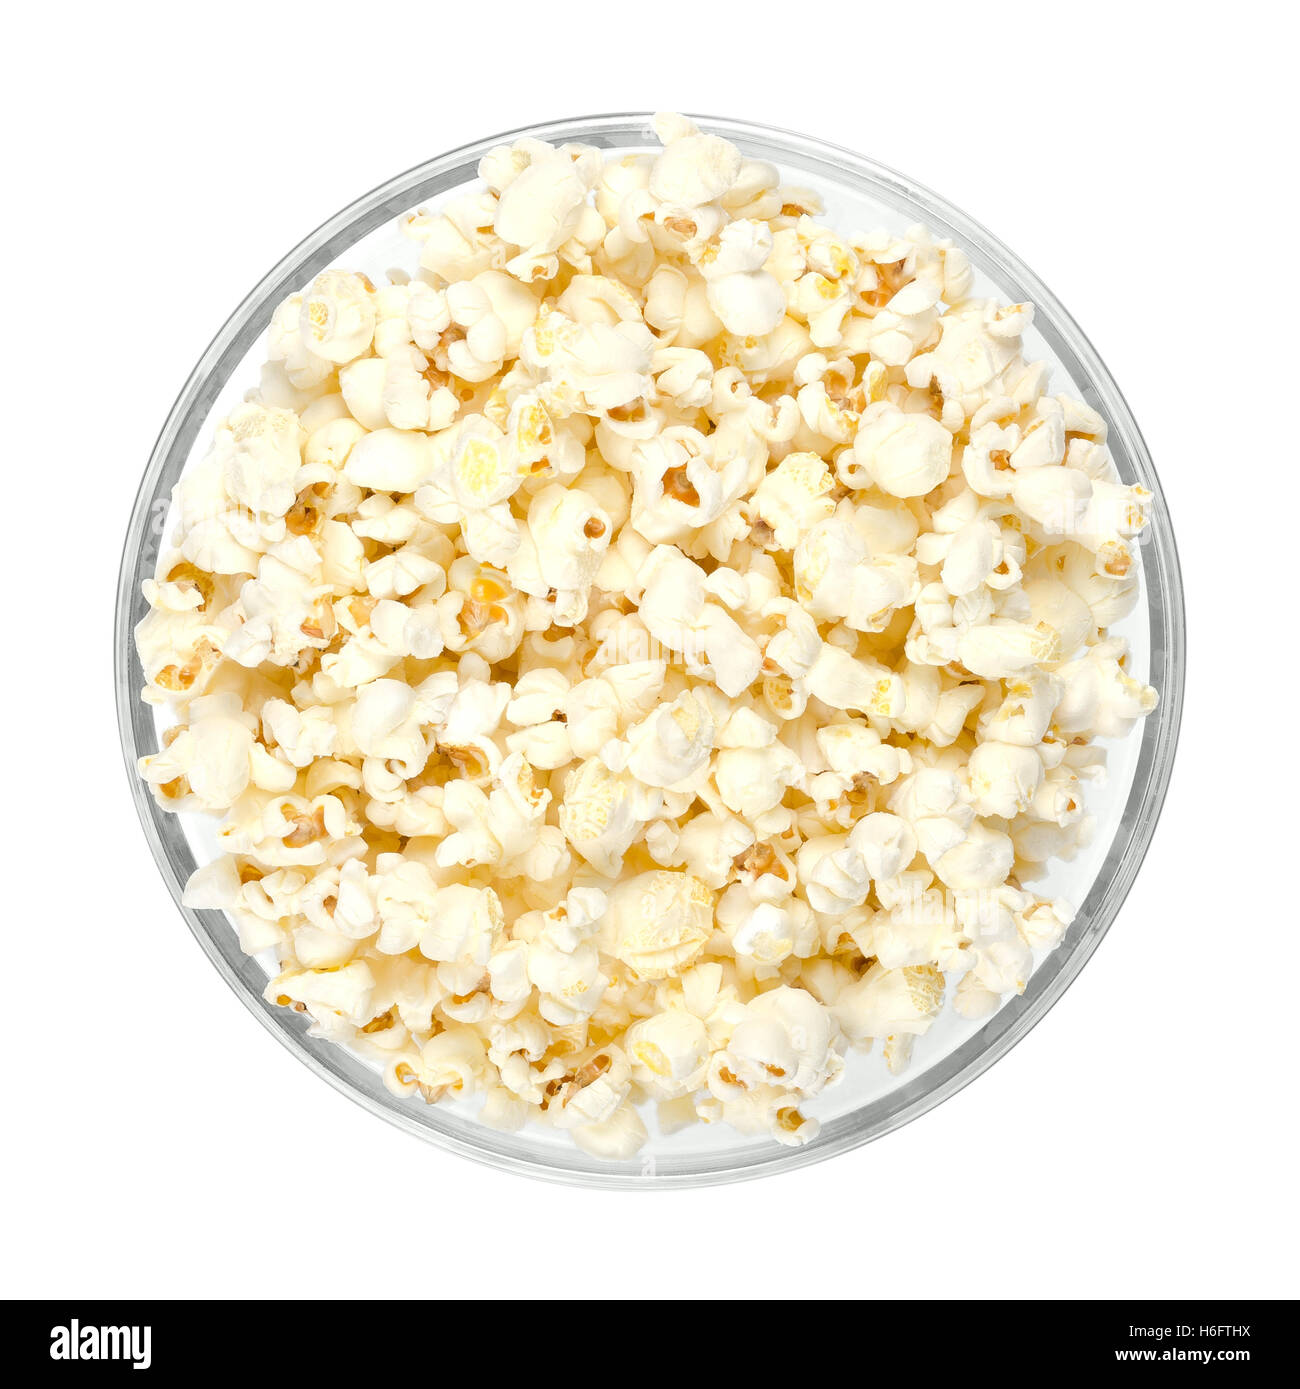 Popped popcorn in glass bowl on white background. Butterfly shaped popcorn puffed up from the kernels, after it - Stock Image